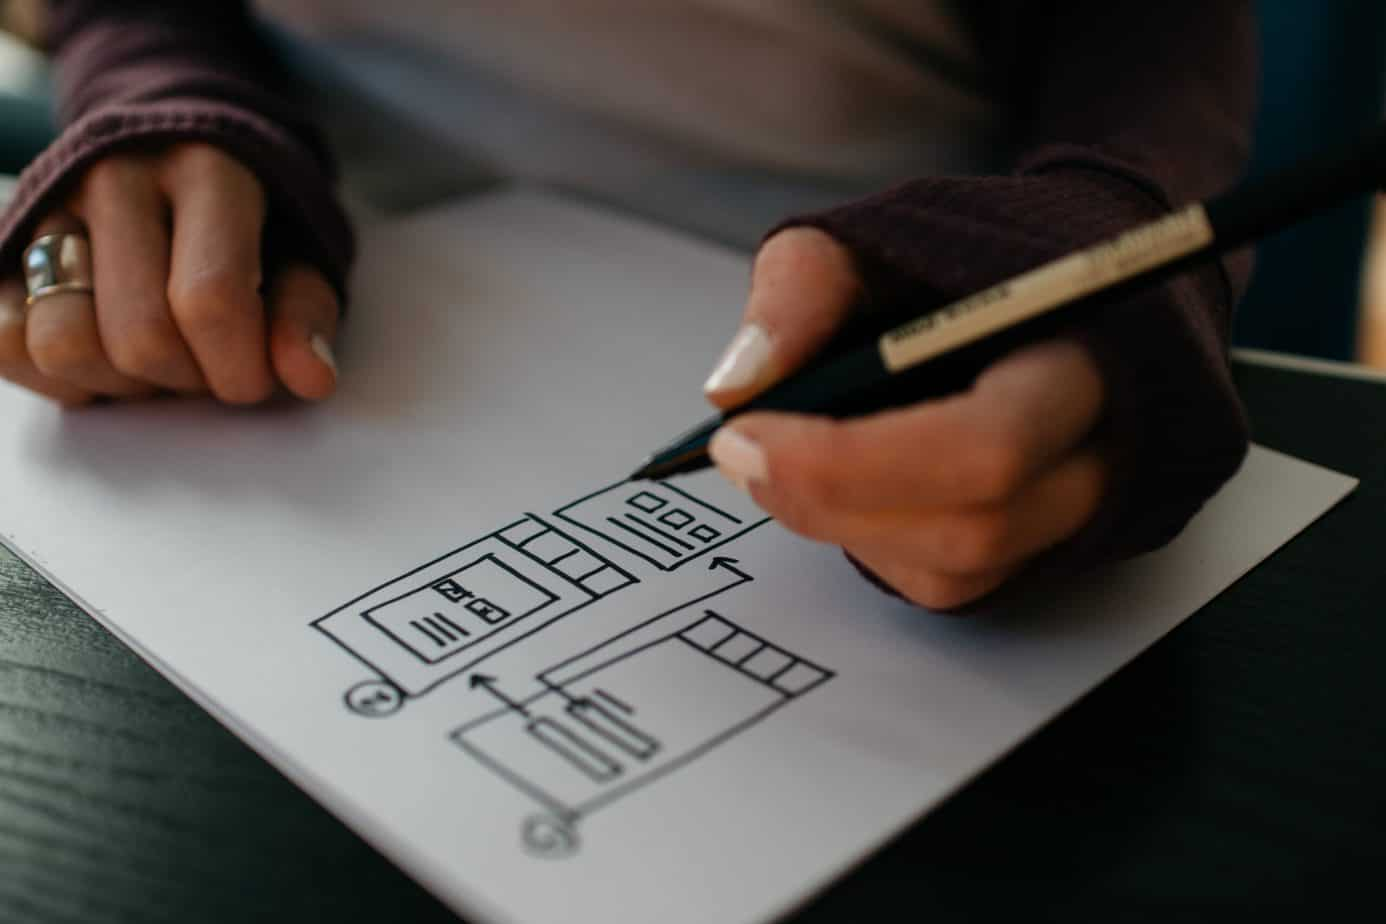 Product designer prototyping mobile app on paper.